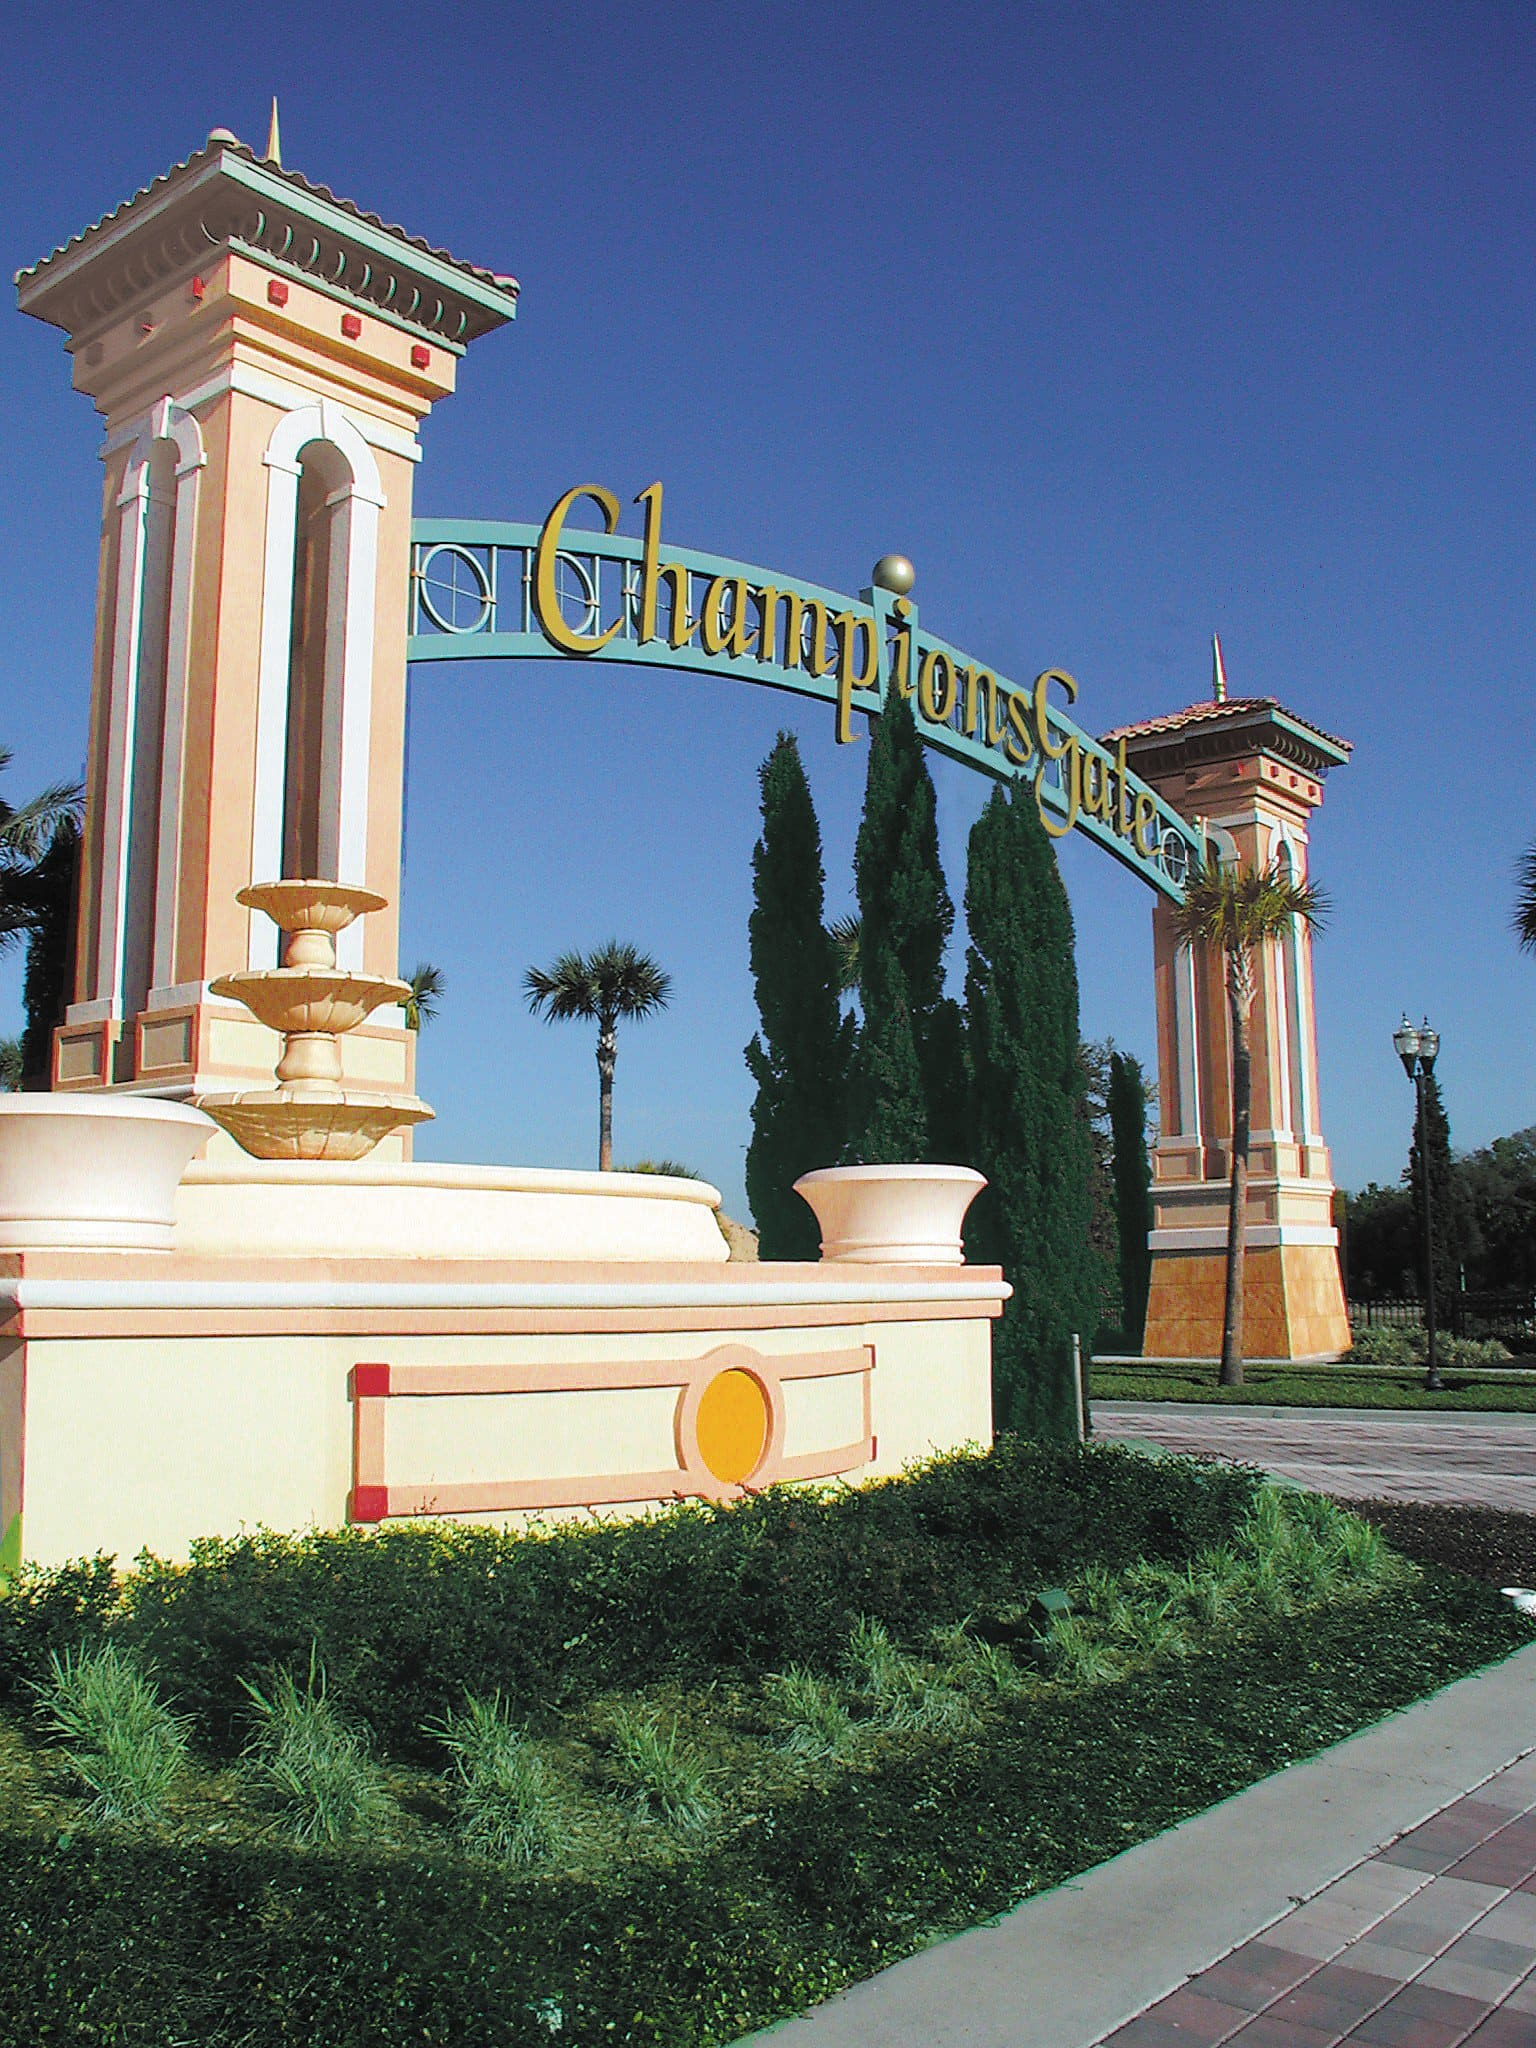 ChampionsGate Orlando Florida – Lennar announce $1 billion plan